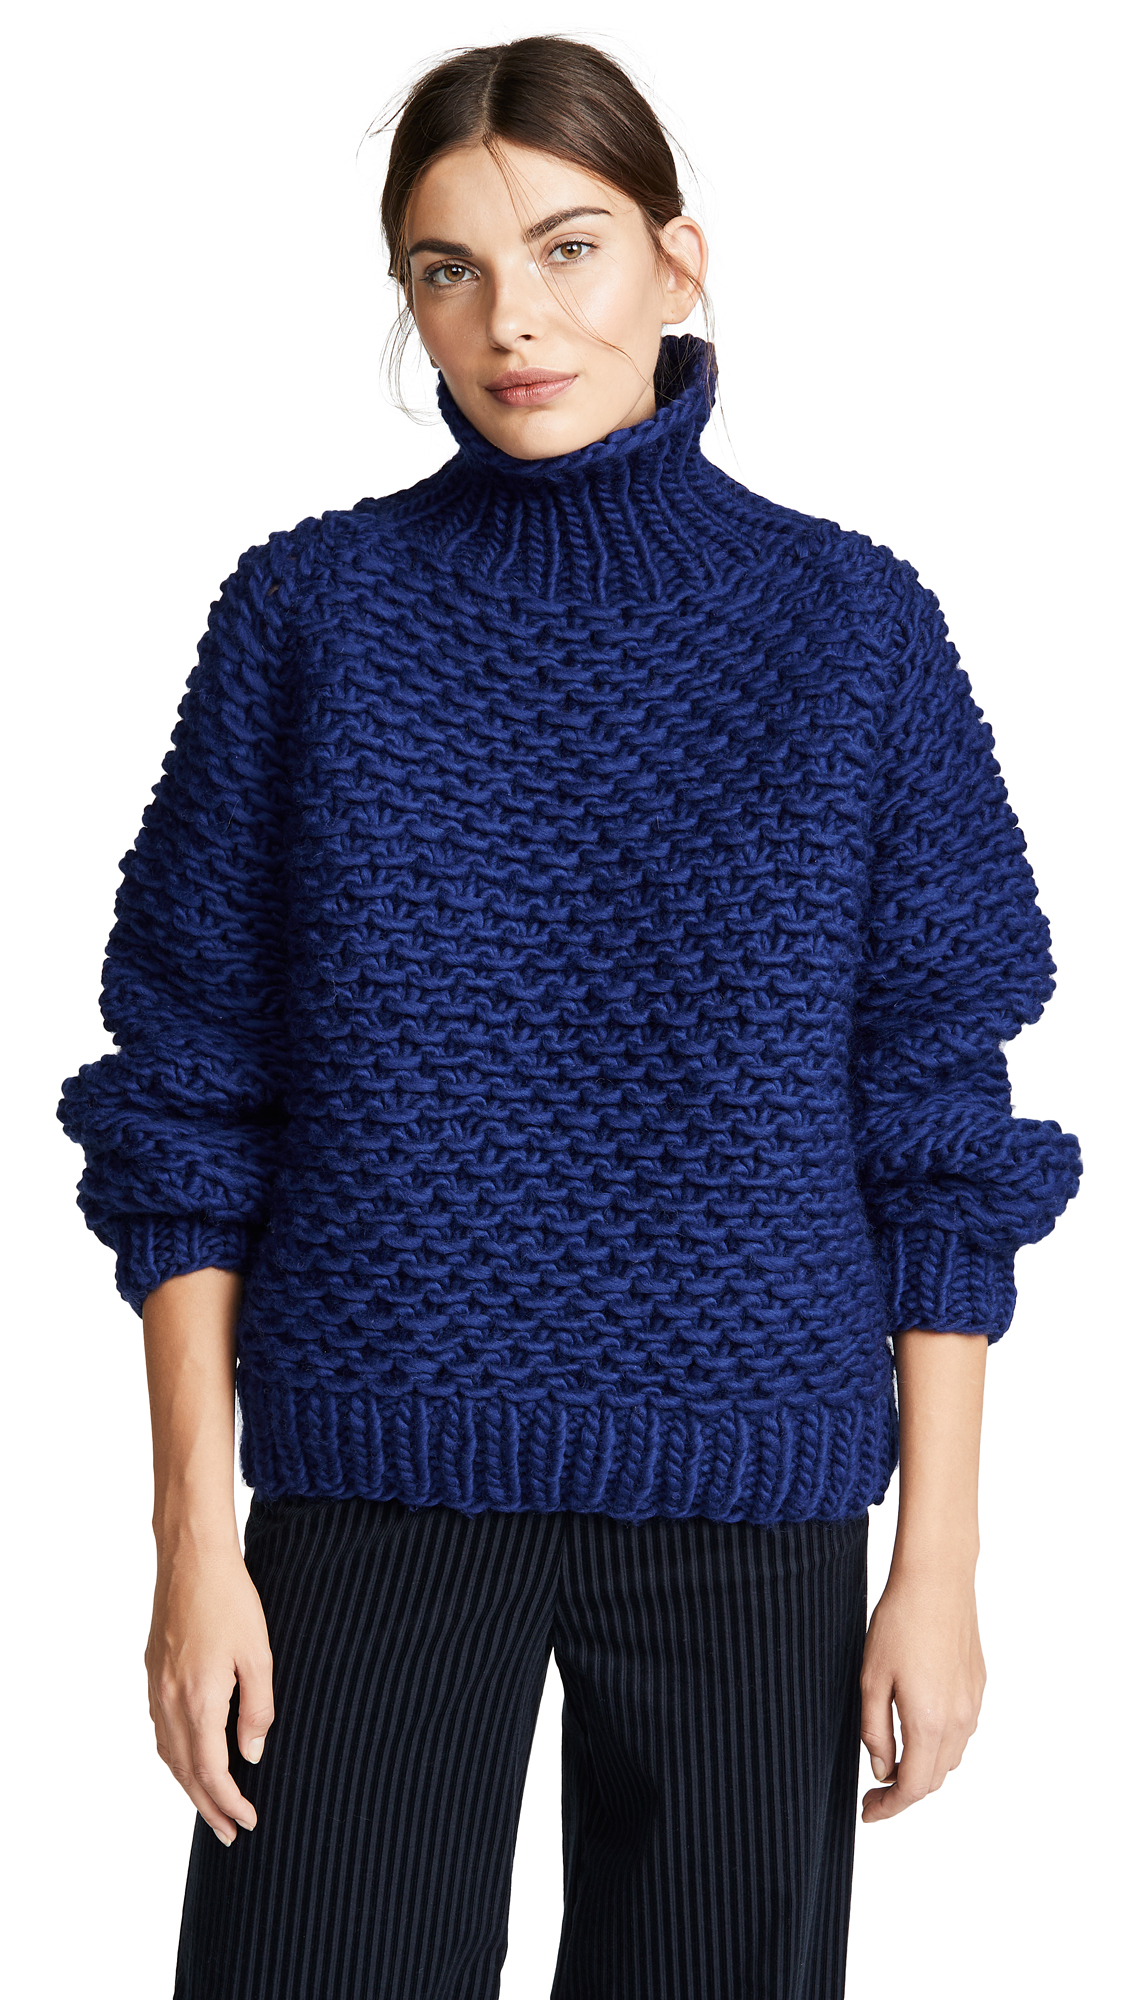 I LOVE MR. MITTENS Pearl Sweater in Navy